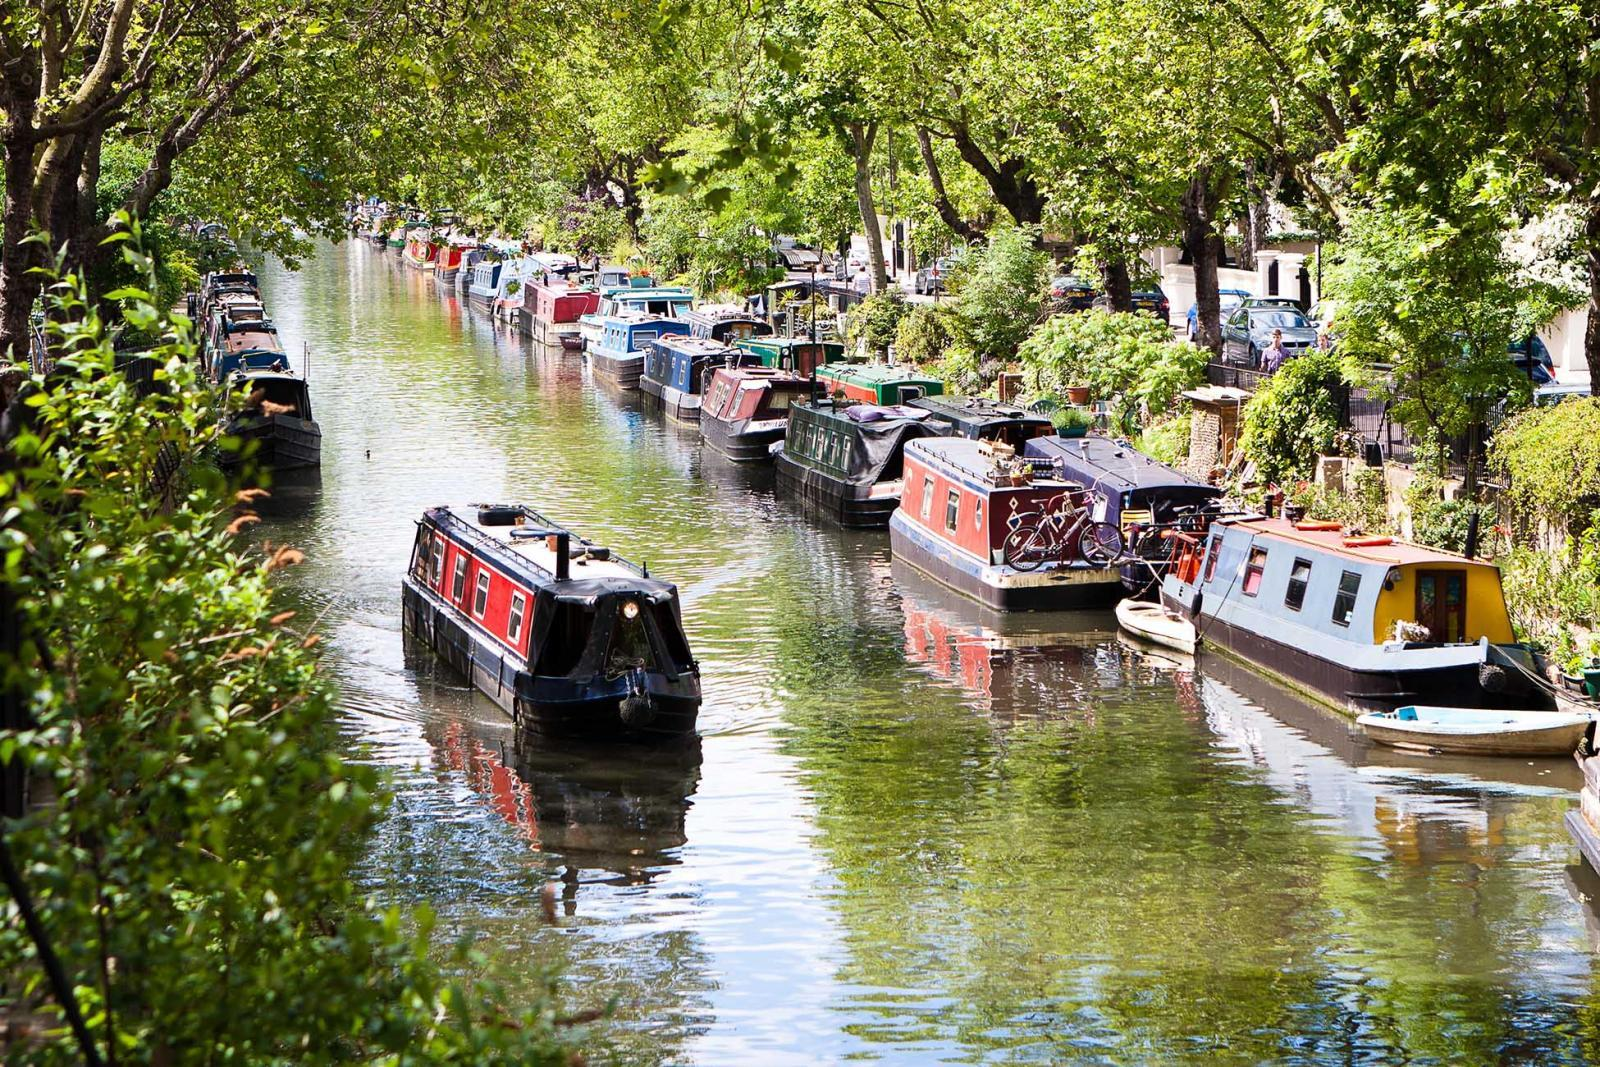 Little Venice in Marylebone